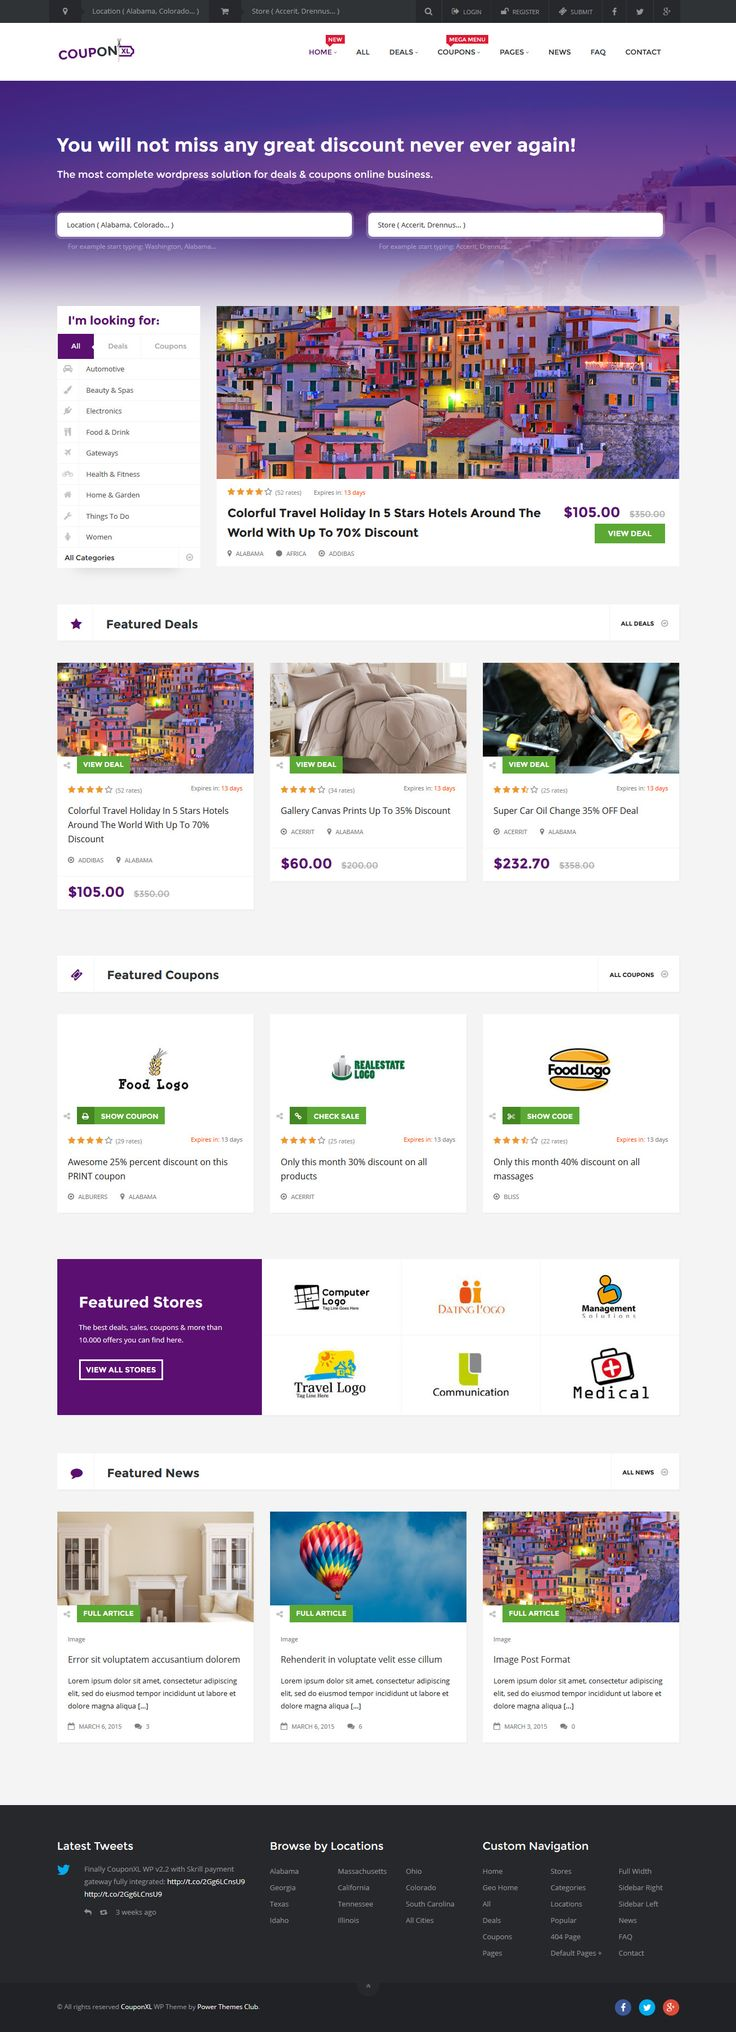 CouponXL - Coupons, Deals & Discounts WordPress Theme #webdesign #website Live Preview and Download: http://themeforest.net/item/couponxl-coupons-deals-discounts-wp-theme/10721950?ref=ksioks